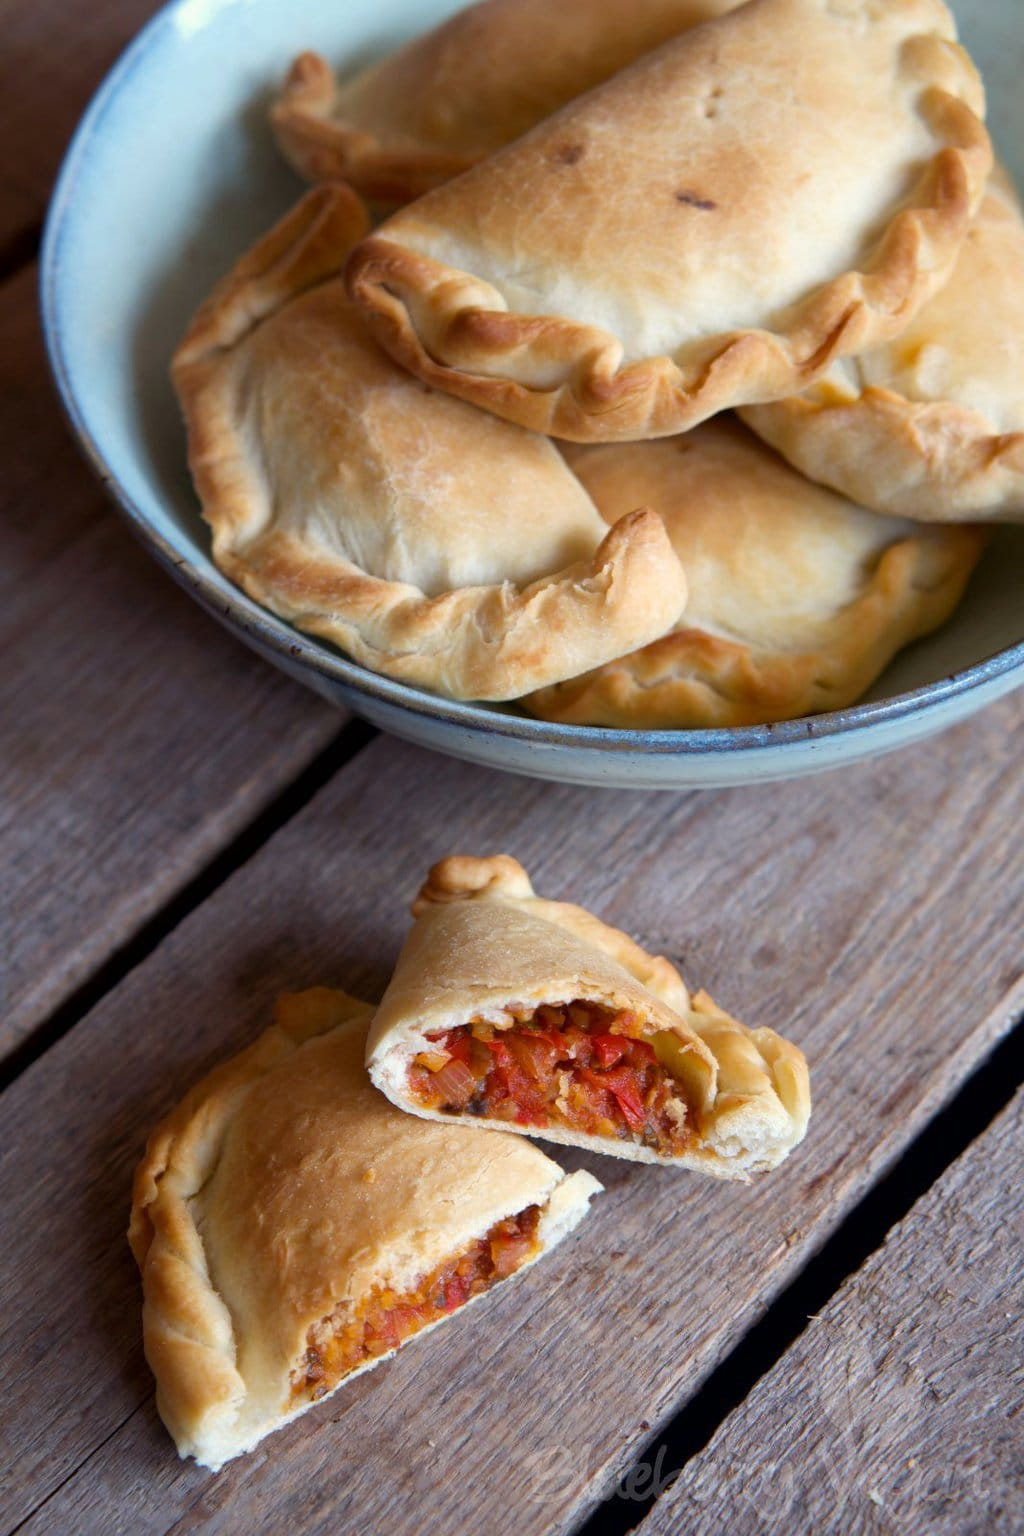 Tasty Empanadas with Bell Pepper and Spinach Filling